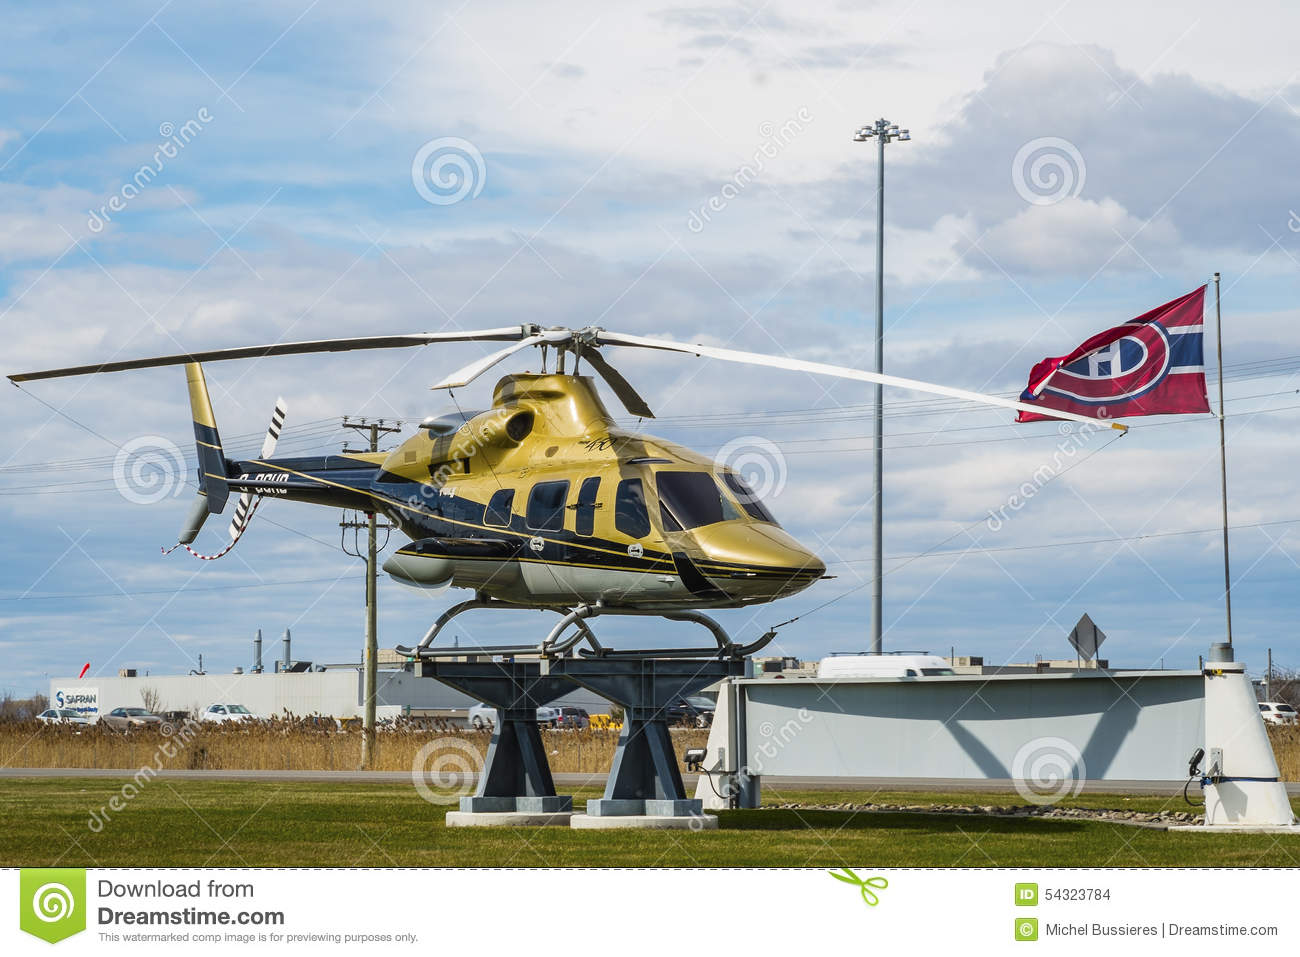 bell helicopter amarillo with Editorial Stock Image Bell Helicopter American Rotorcraft Manufacturer Headquartered Fort Worth Texas Division Textron Manufactures Image54323784 on Sjsdsrfjpppm 1689 2058 also Bell Advances Next Generation Tiltrotor Development likewise V 280 Valor additionally V 280 joined furthermore 07 11 09 40th Anniversary Flight Demo.